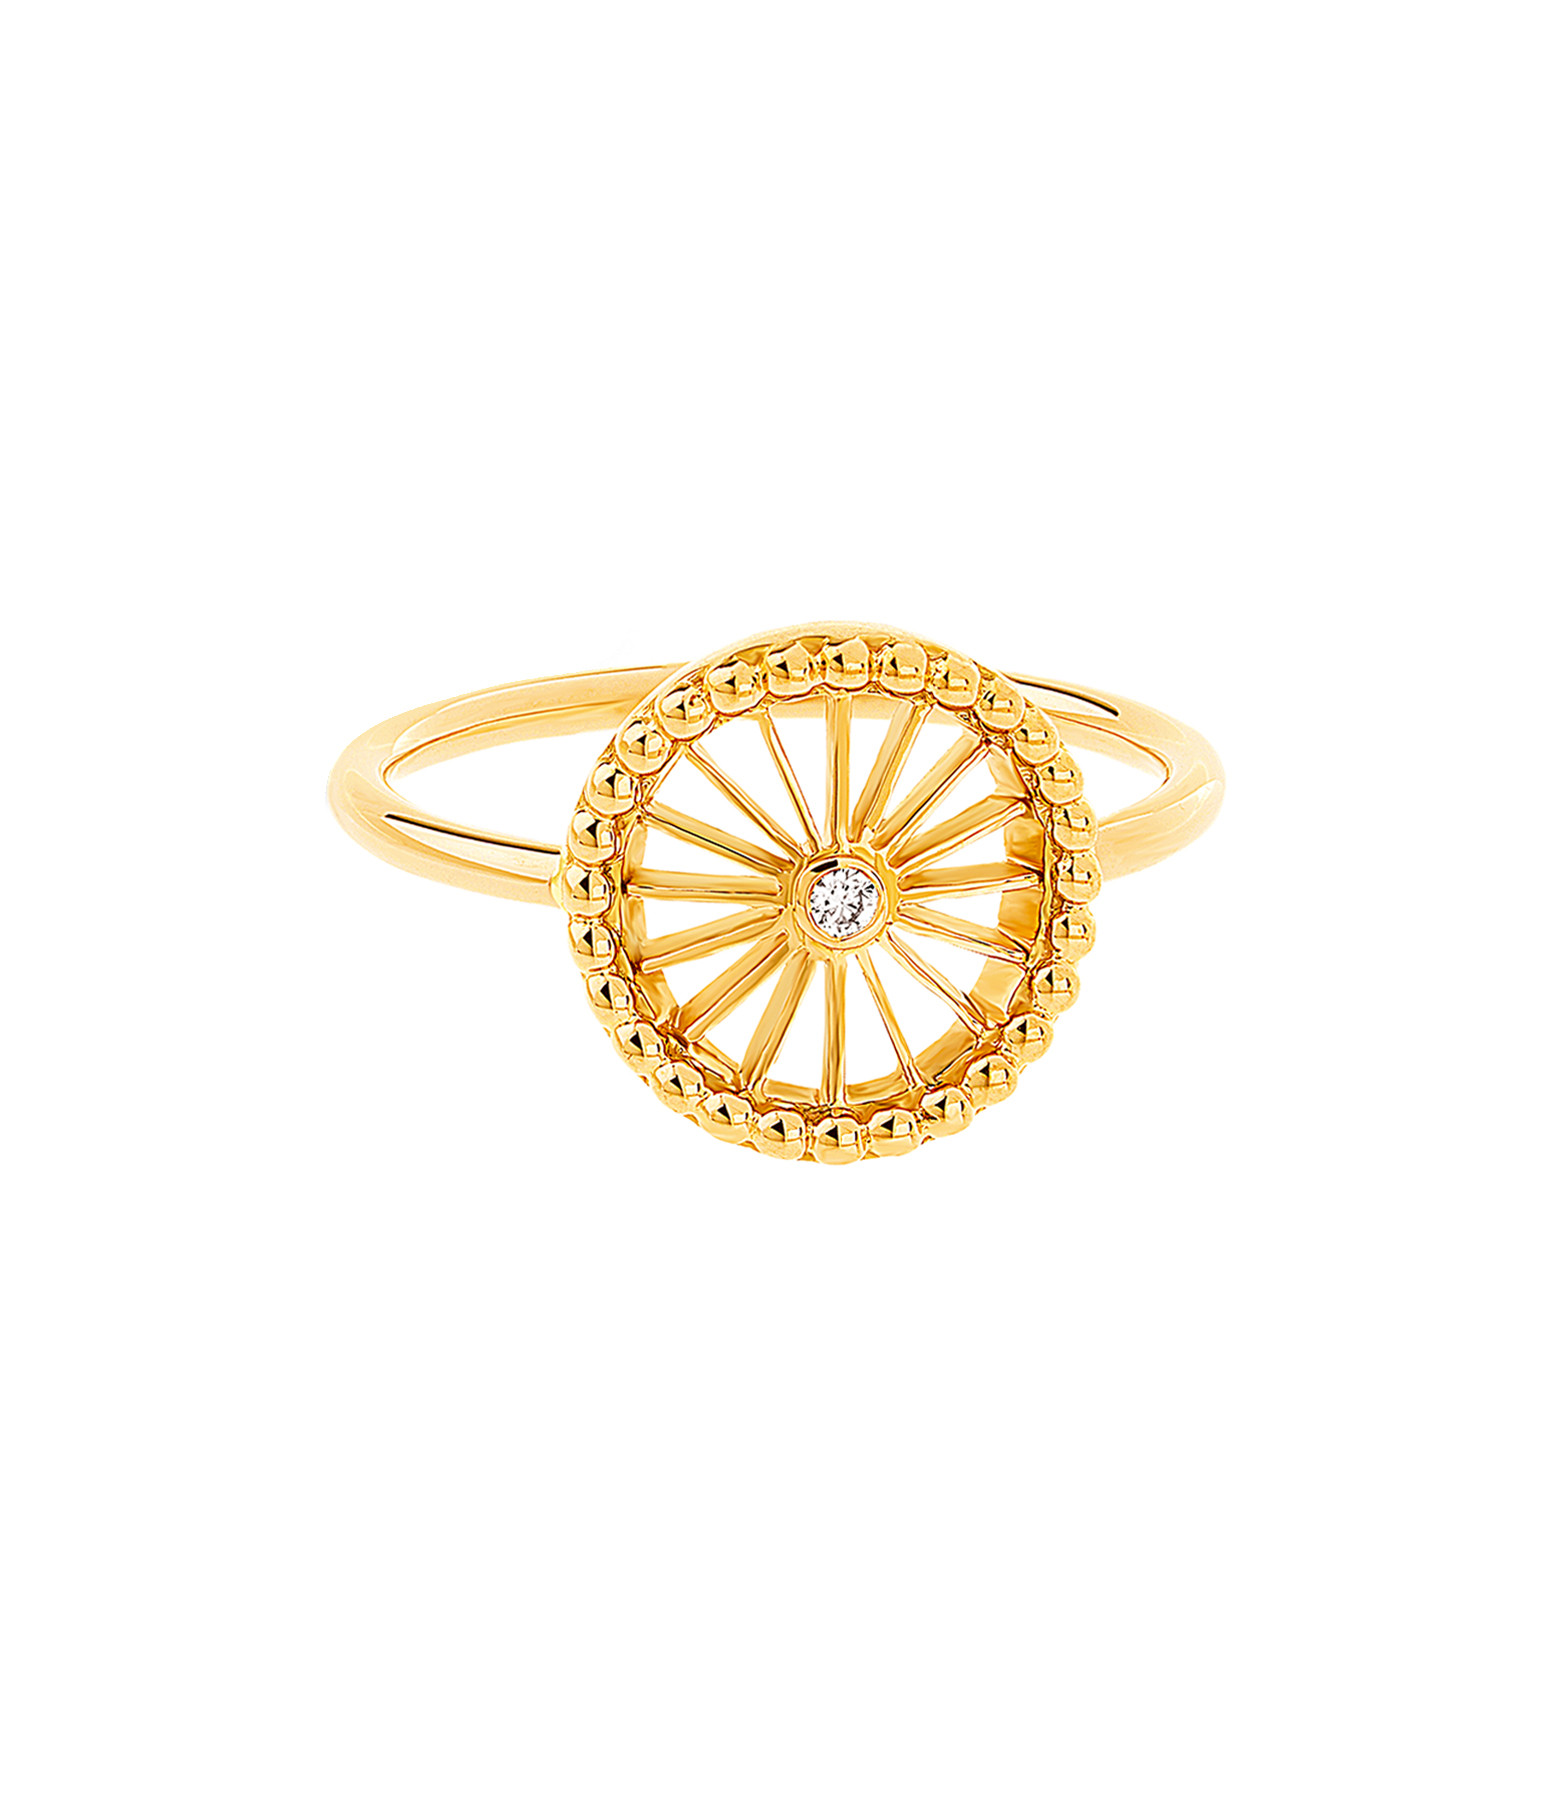 NAVA JOAILLERIE - Bague Mini-Cheyenne Ronde Diamants Or Jaune